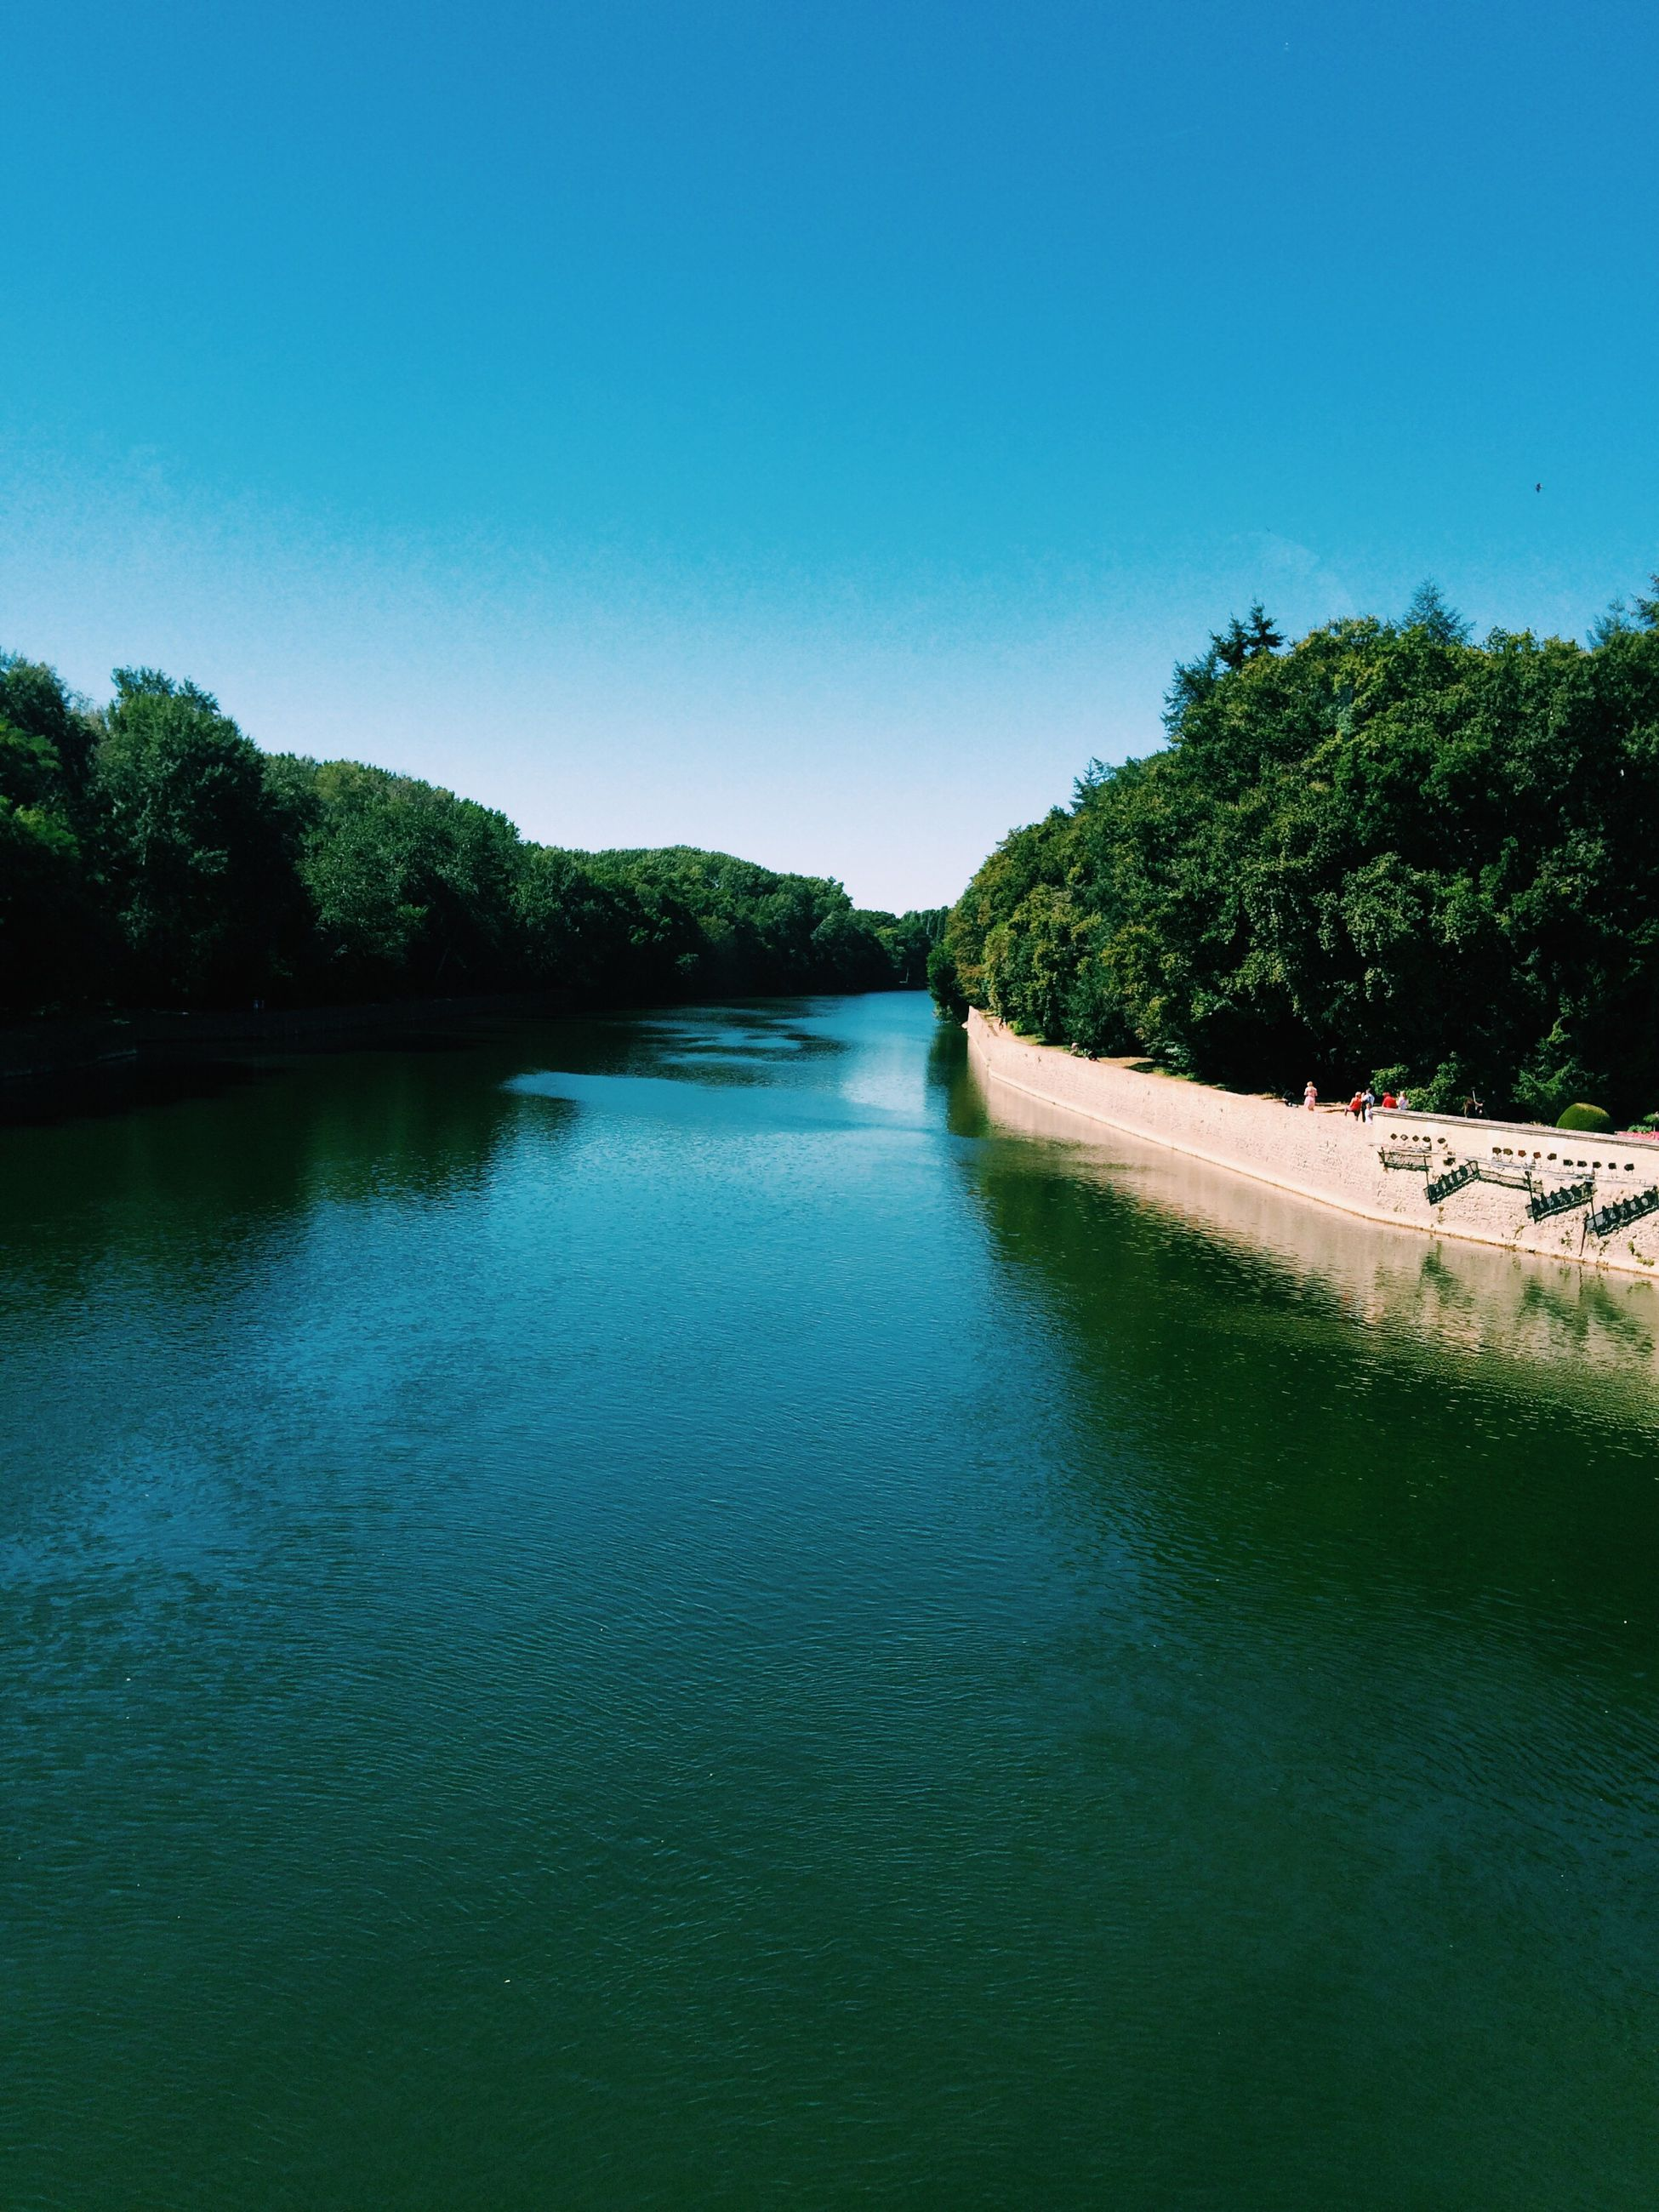 tree, blue, tranquil scene, water, clear sky, tranquility, scenics, waterfront, copy space, beauty in nature, nature, growth, day, calm, non-urban scene, green color, outdoors, diminishing perspective, sky, riverbank, no people, remote, water surface